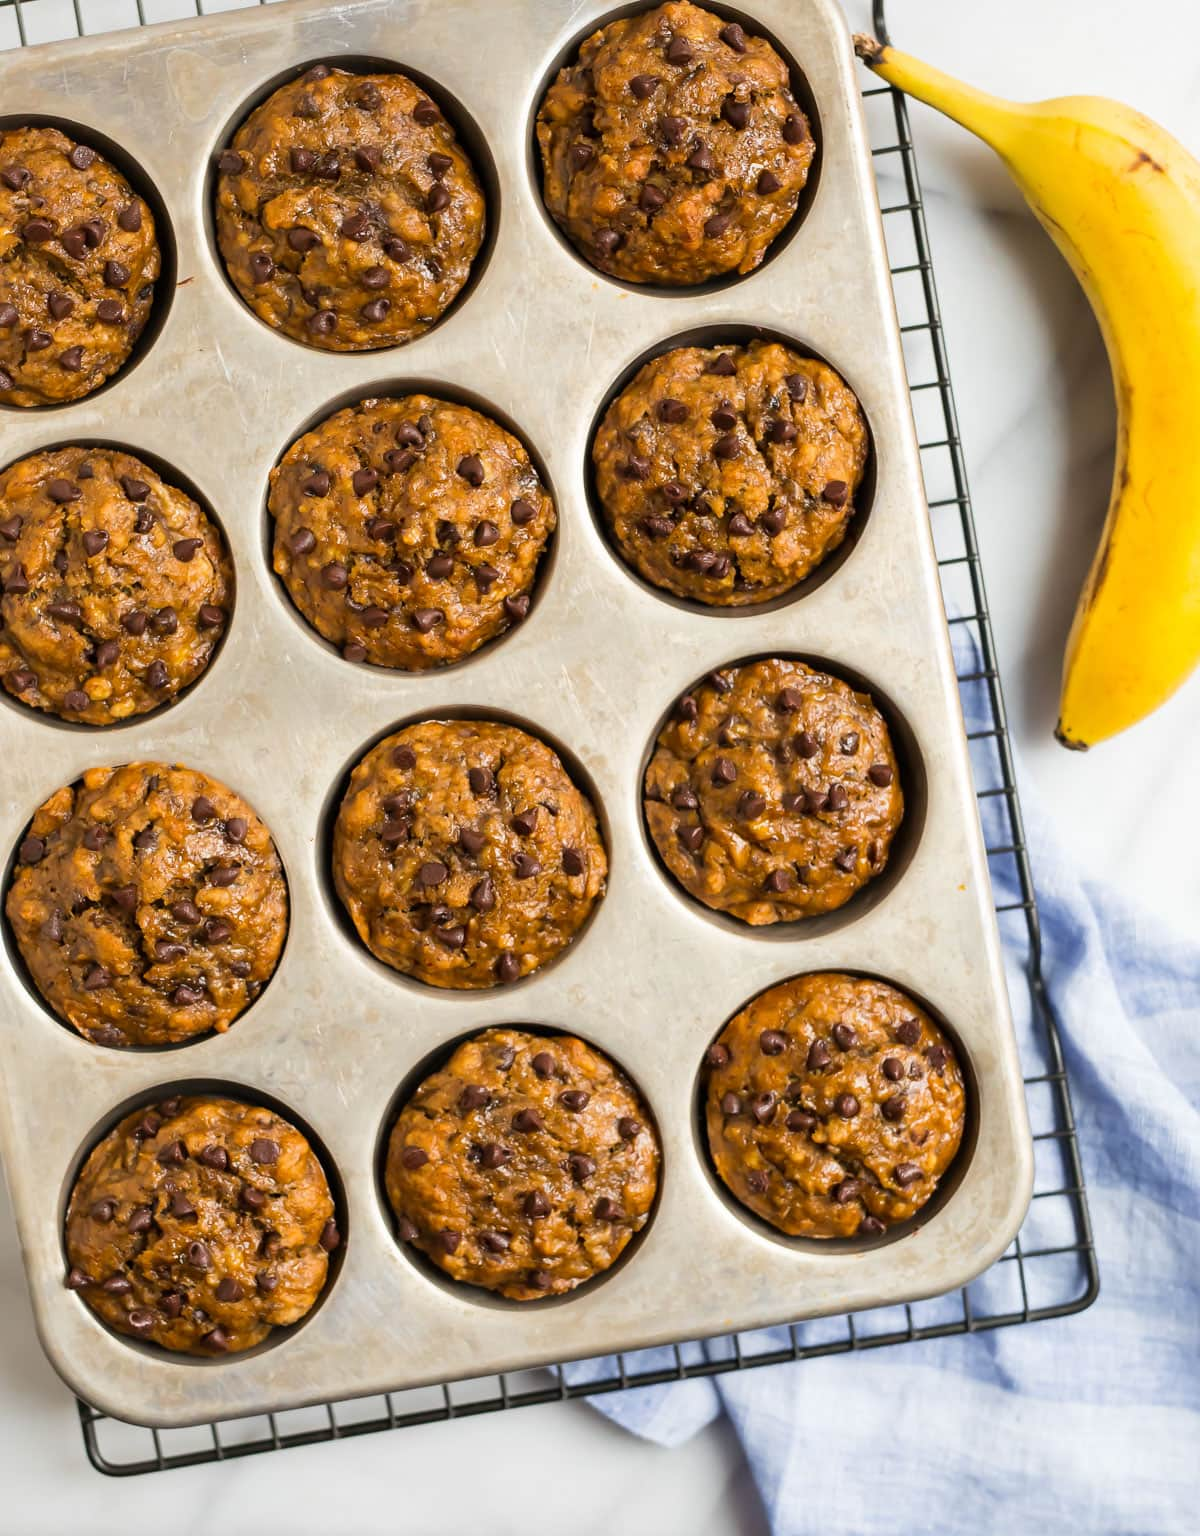 Healthy Banana Chocolate Chip Muffins. Make ahead for breakfasts and snacks!